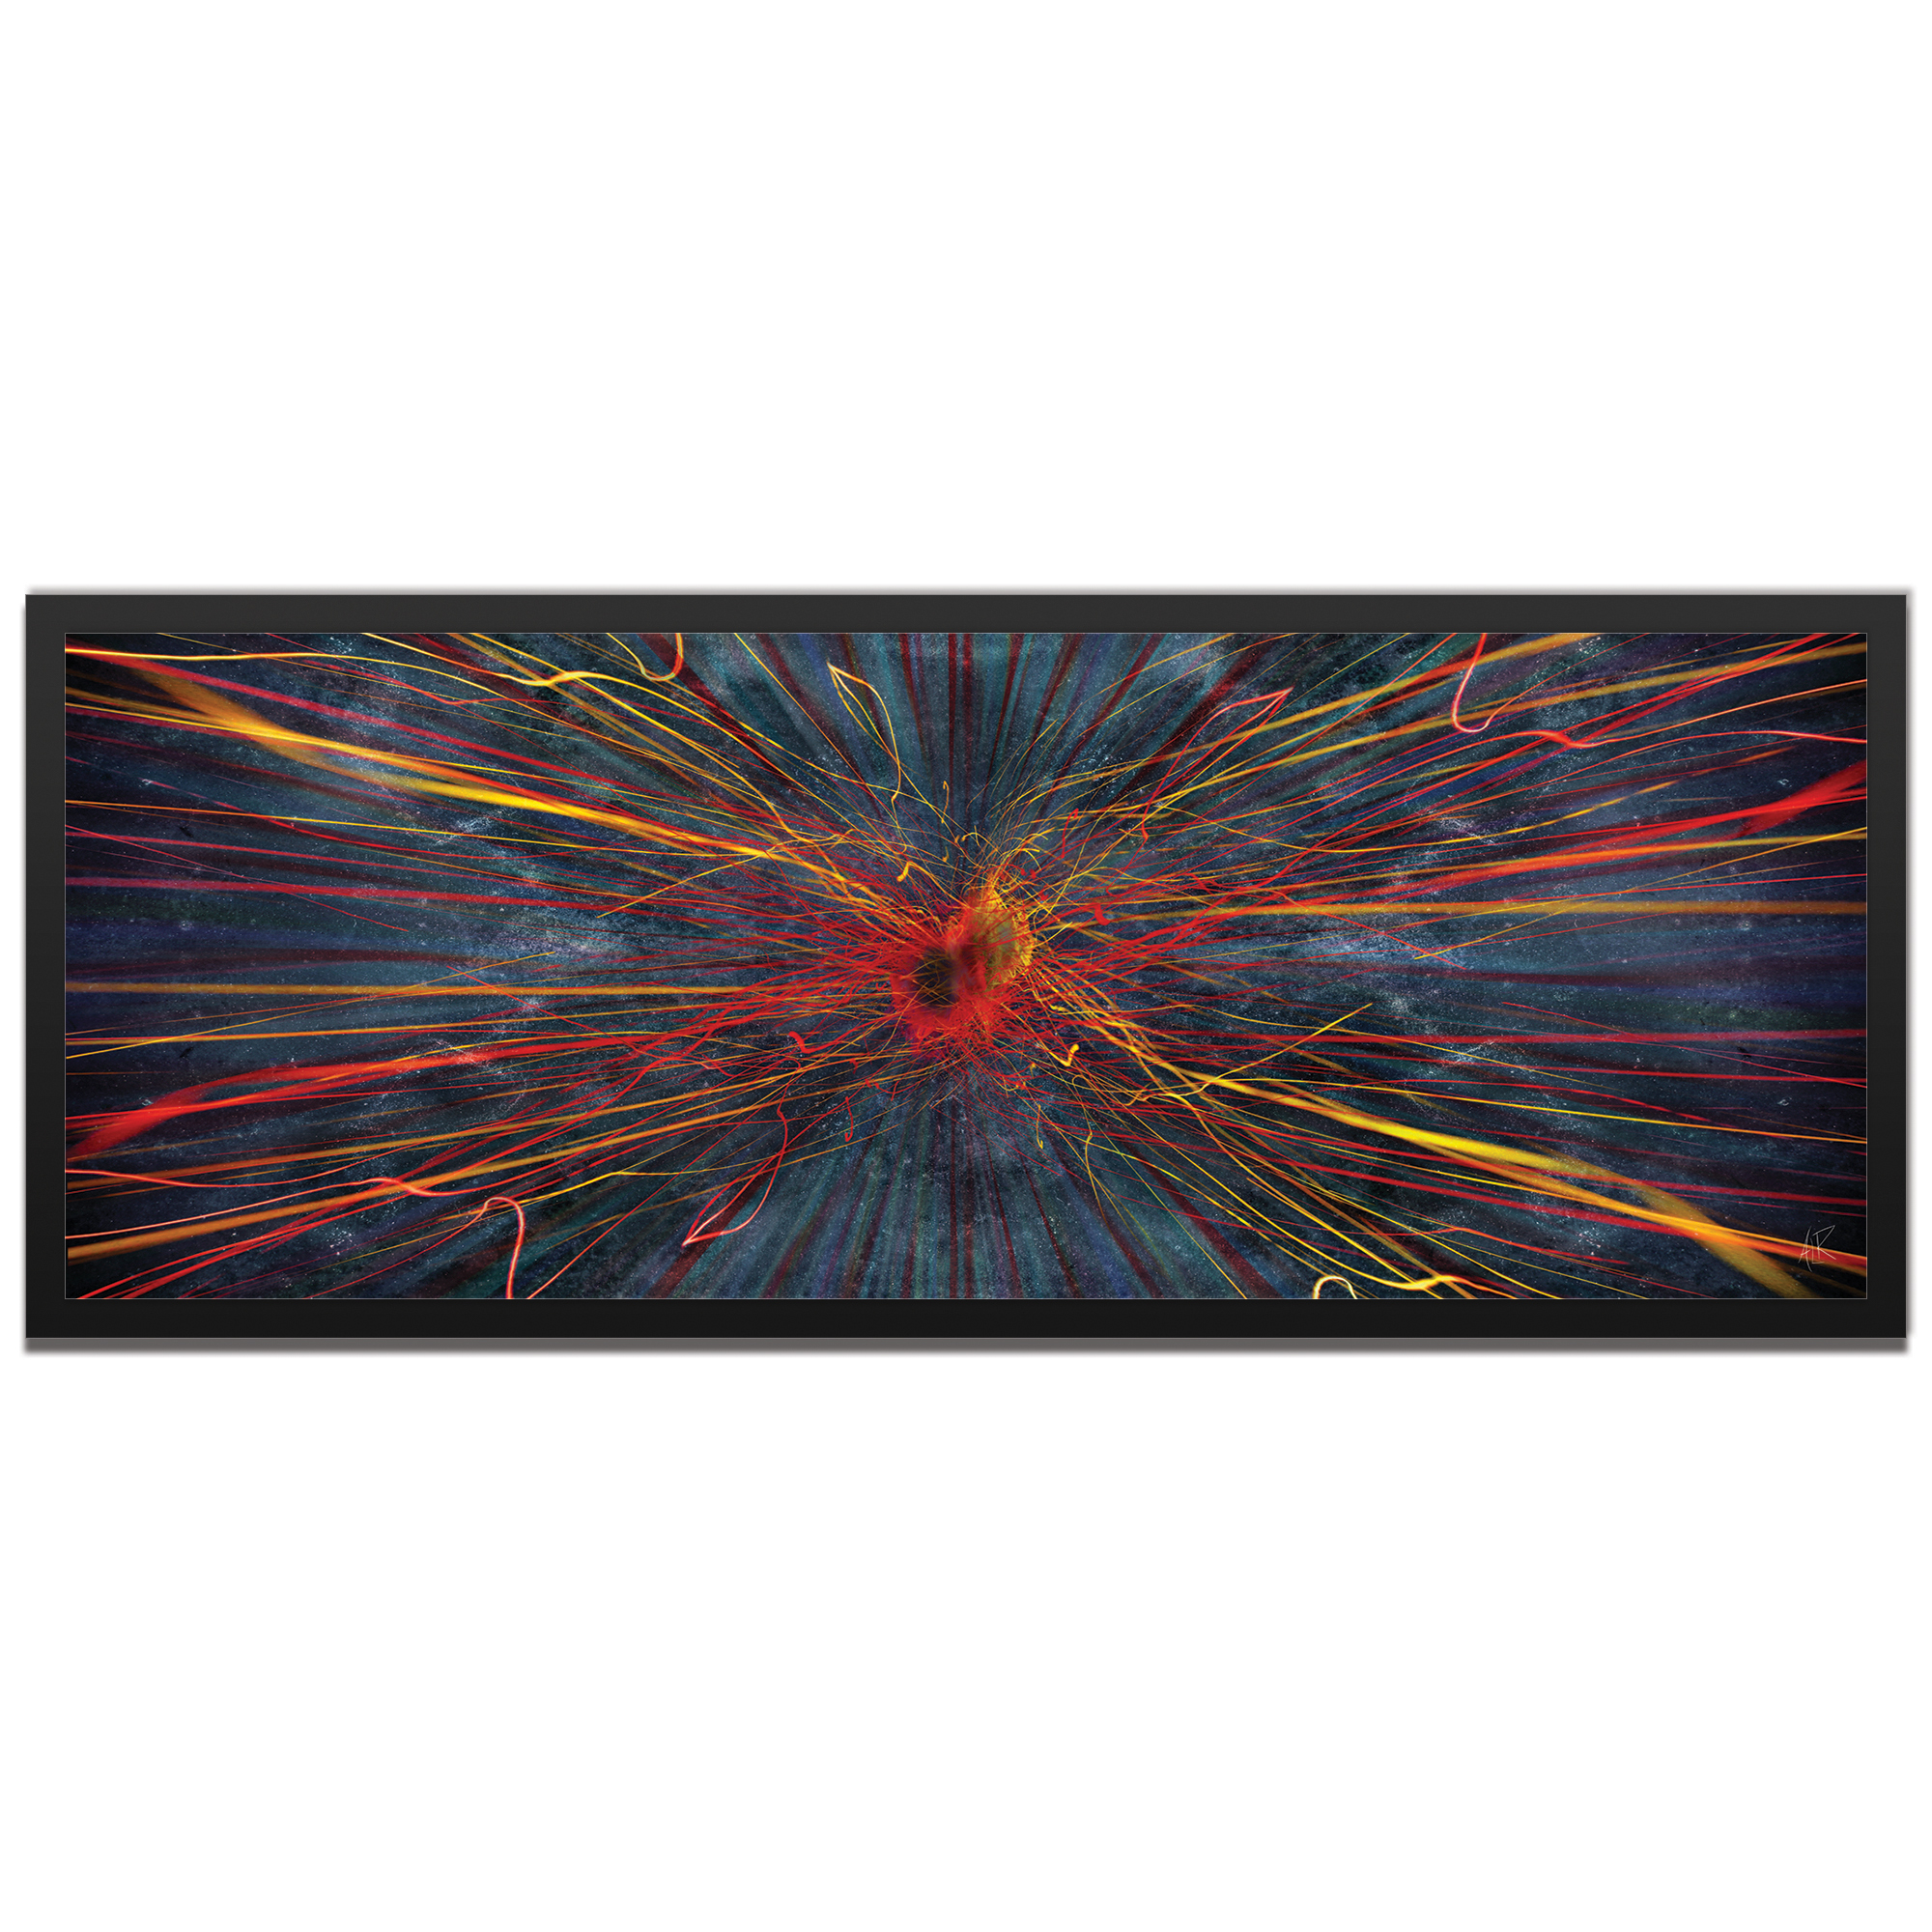 Amber LaRosa 'Implosion Framed' 48in x 19in Abstract Urban Decor Art on Colored Metal